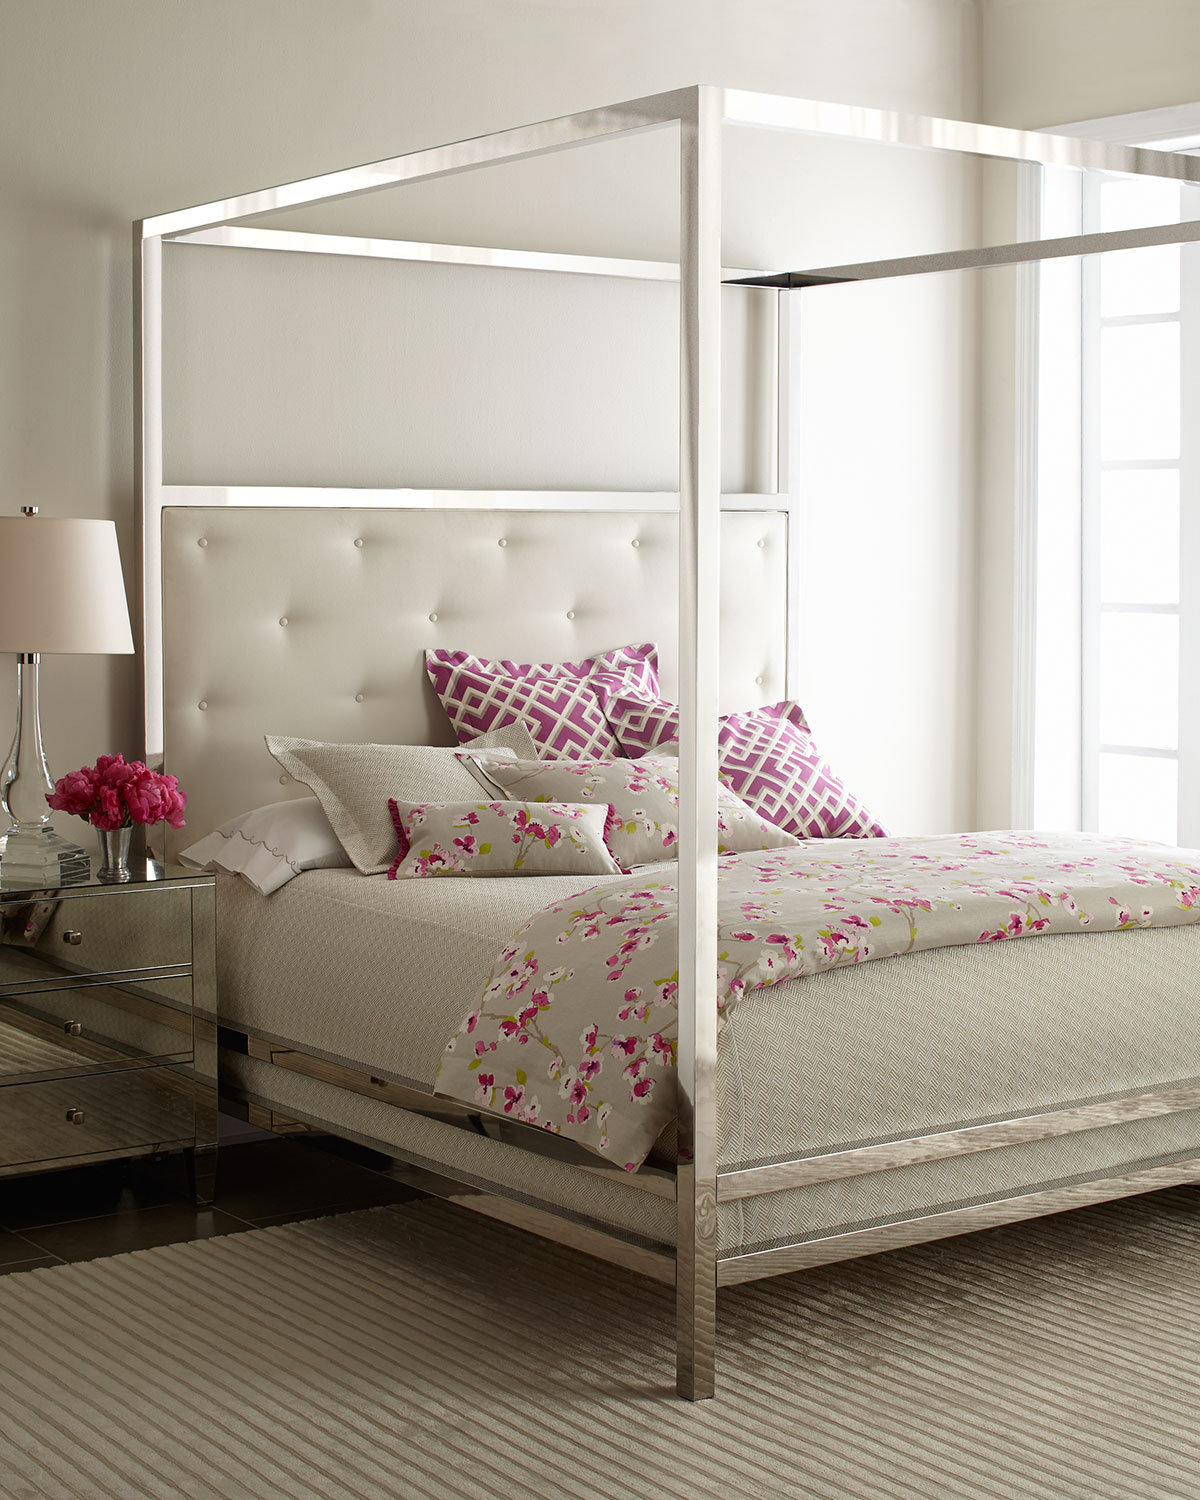 bernhardt magdalena bedroom furniture from horchow keep